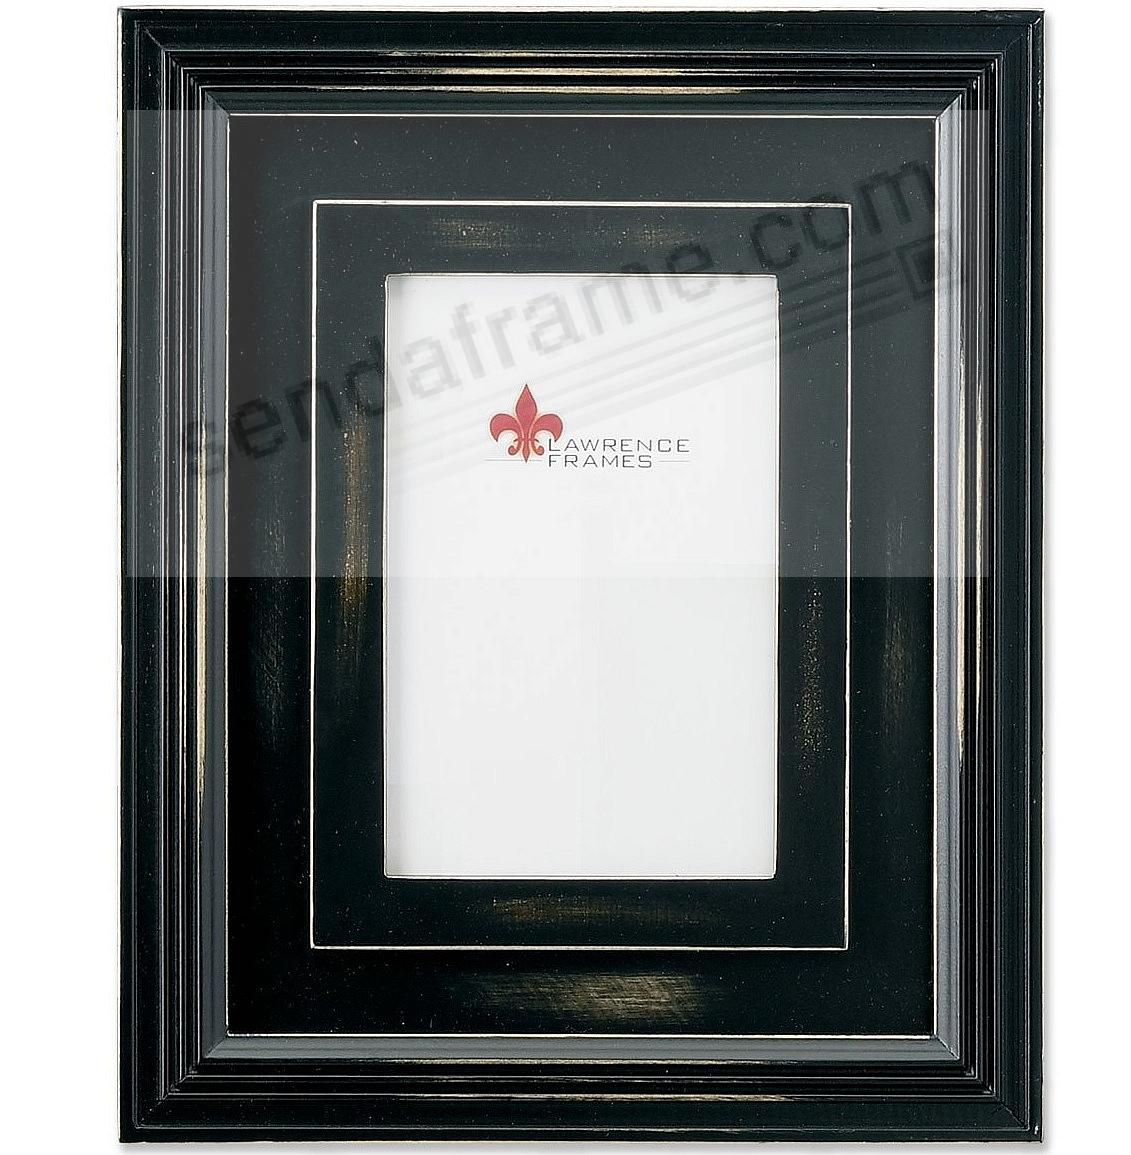 Dimensional rustic black frame by Lawrence Frames®